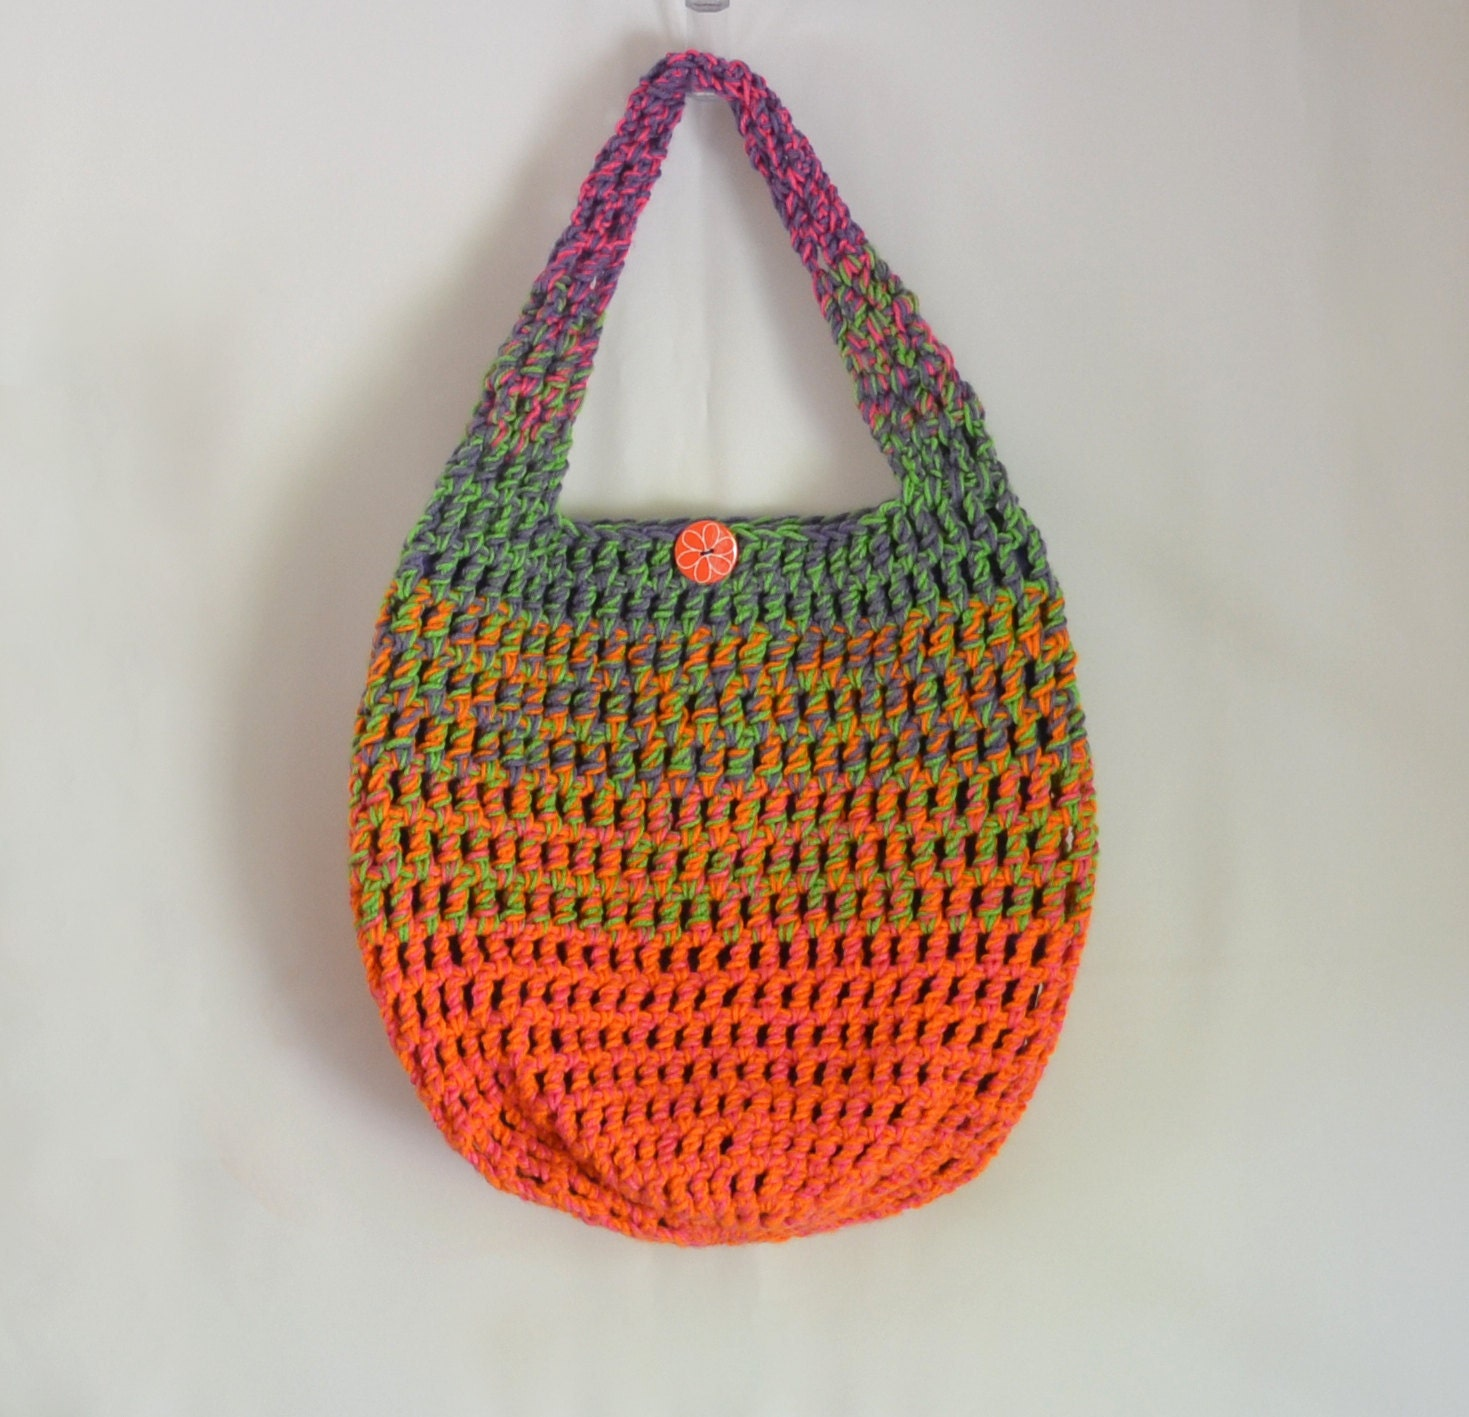 Crochet Crossbody Bag Pattern : Crochet Shoulder Bag Hobo Bag Rainbow Neon Spring by 2LeftHandz